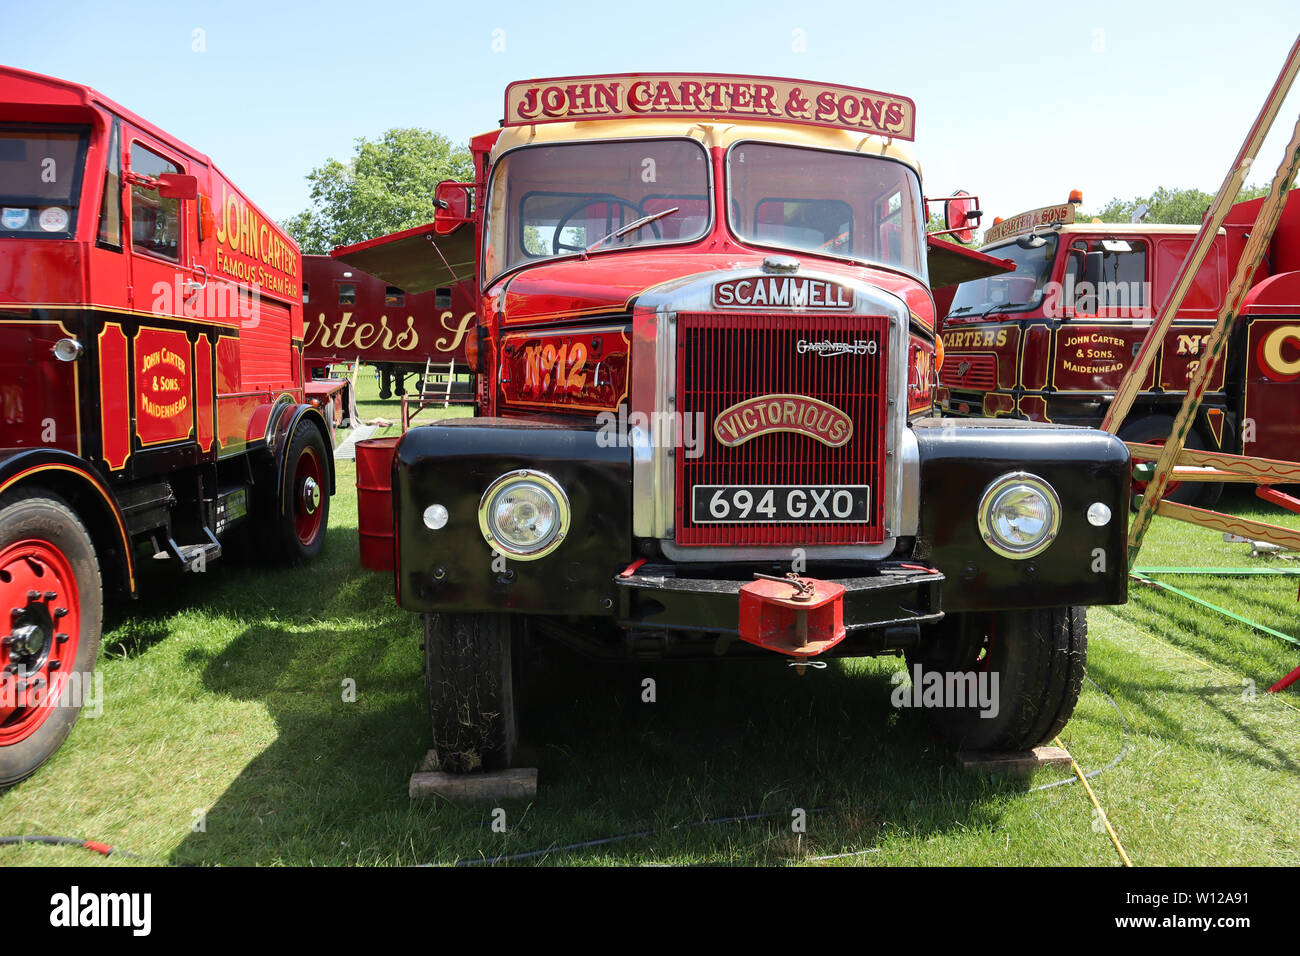 Scammell Lorry Truck, Carters Steam Fair, Peckham Rye Common, London, UK, 29 June 2019, Photo by Richard Goldschmidt - Stock Image